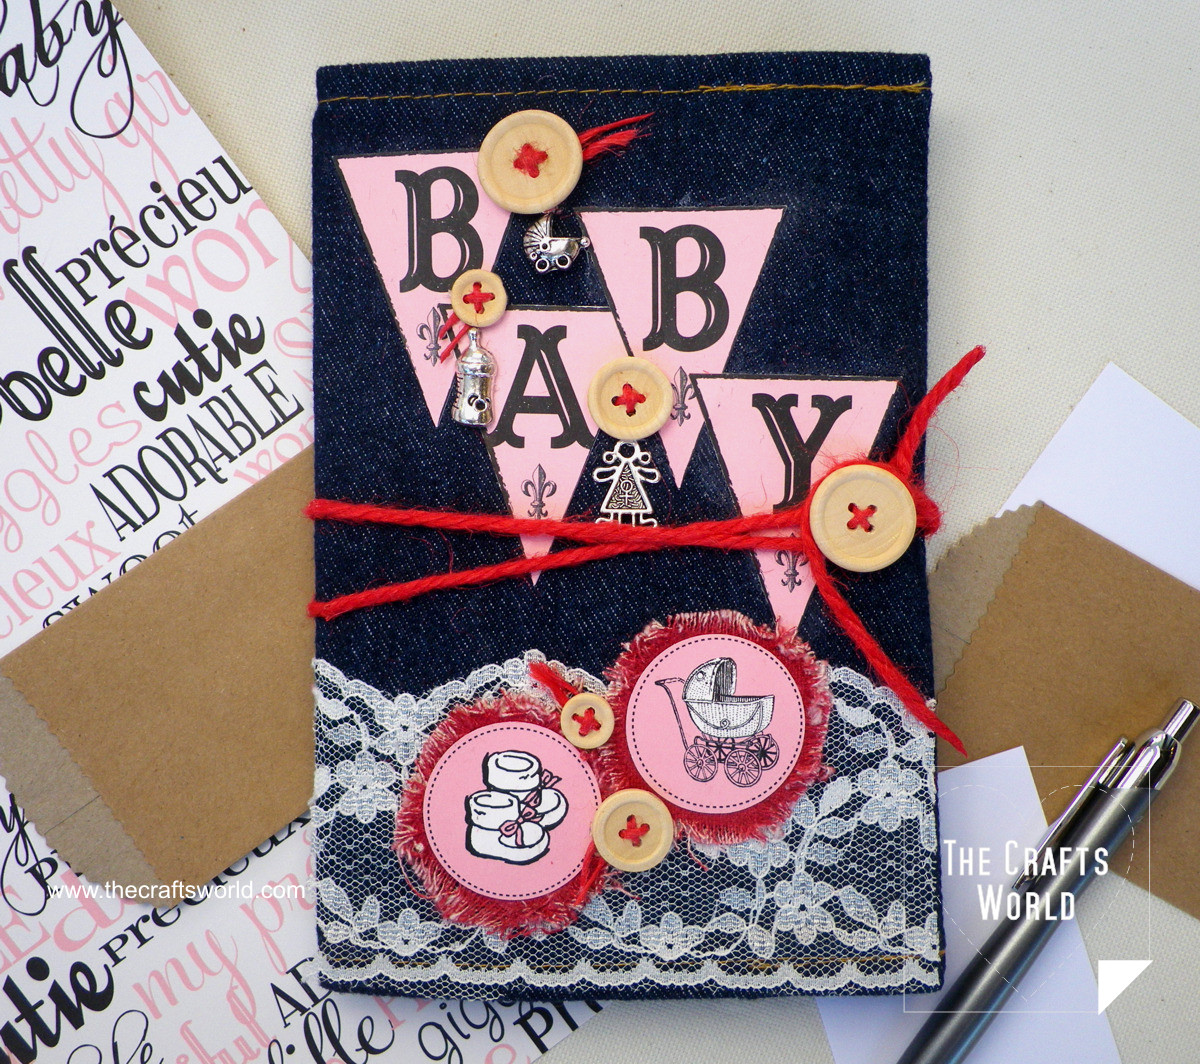 Baby photo album with denim cover